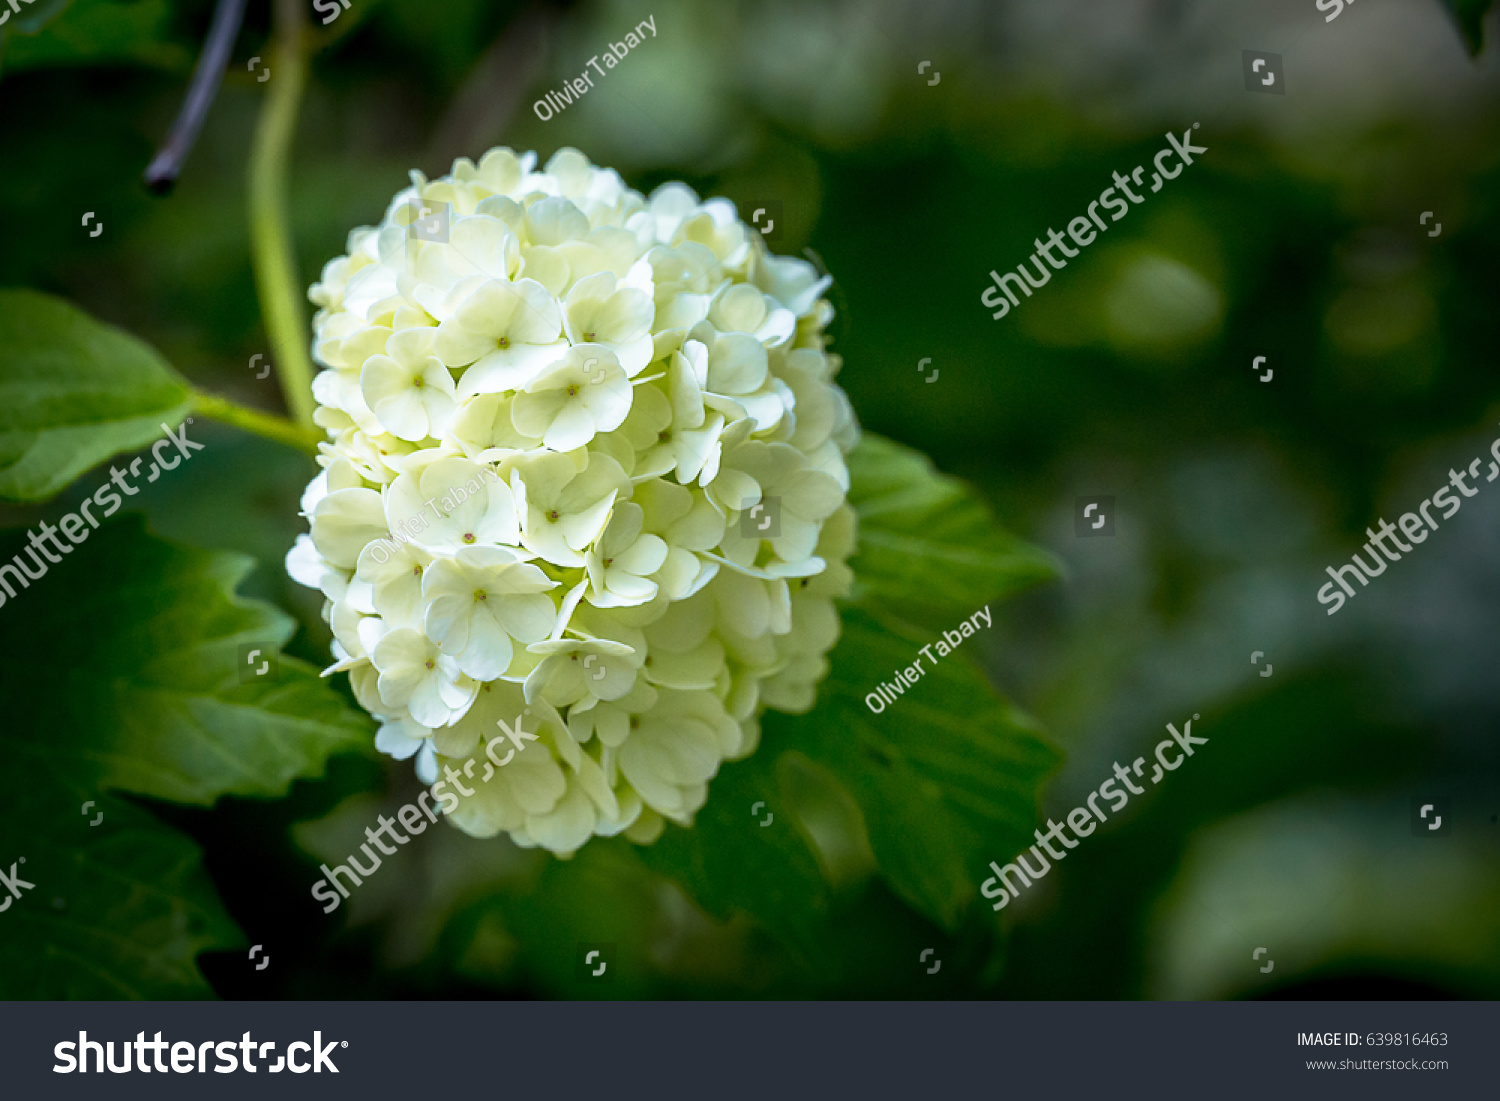 White Snowball Flower Leaves Stock Photo Edit Now 639816463